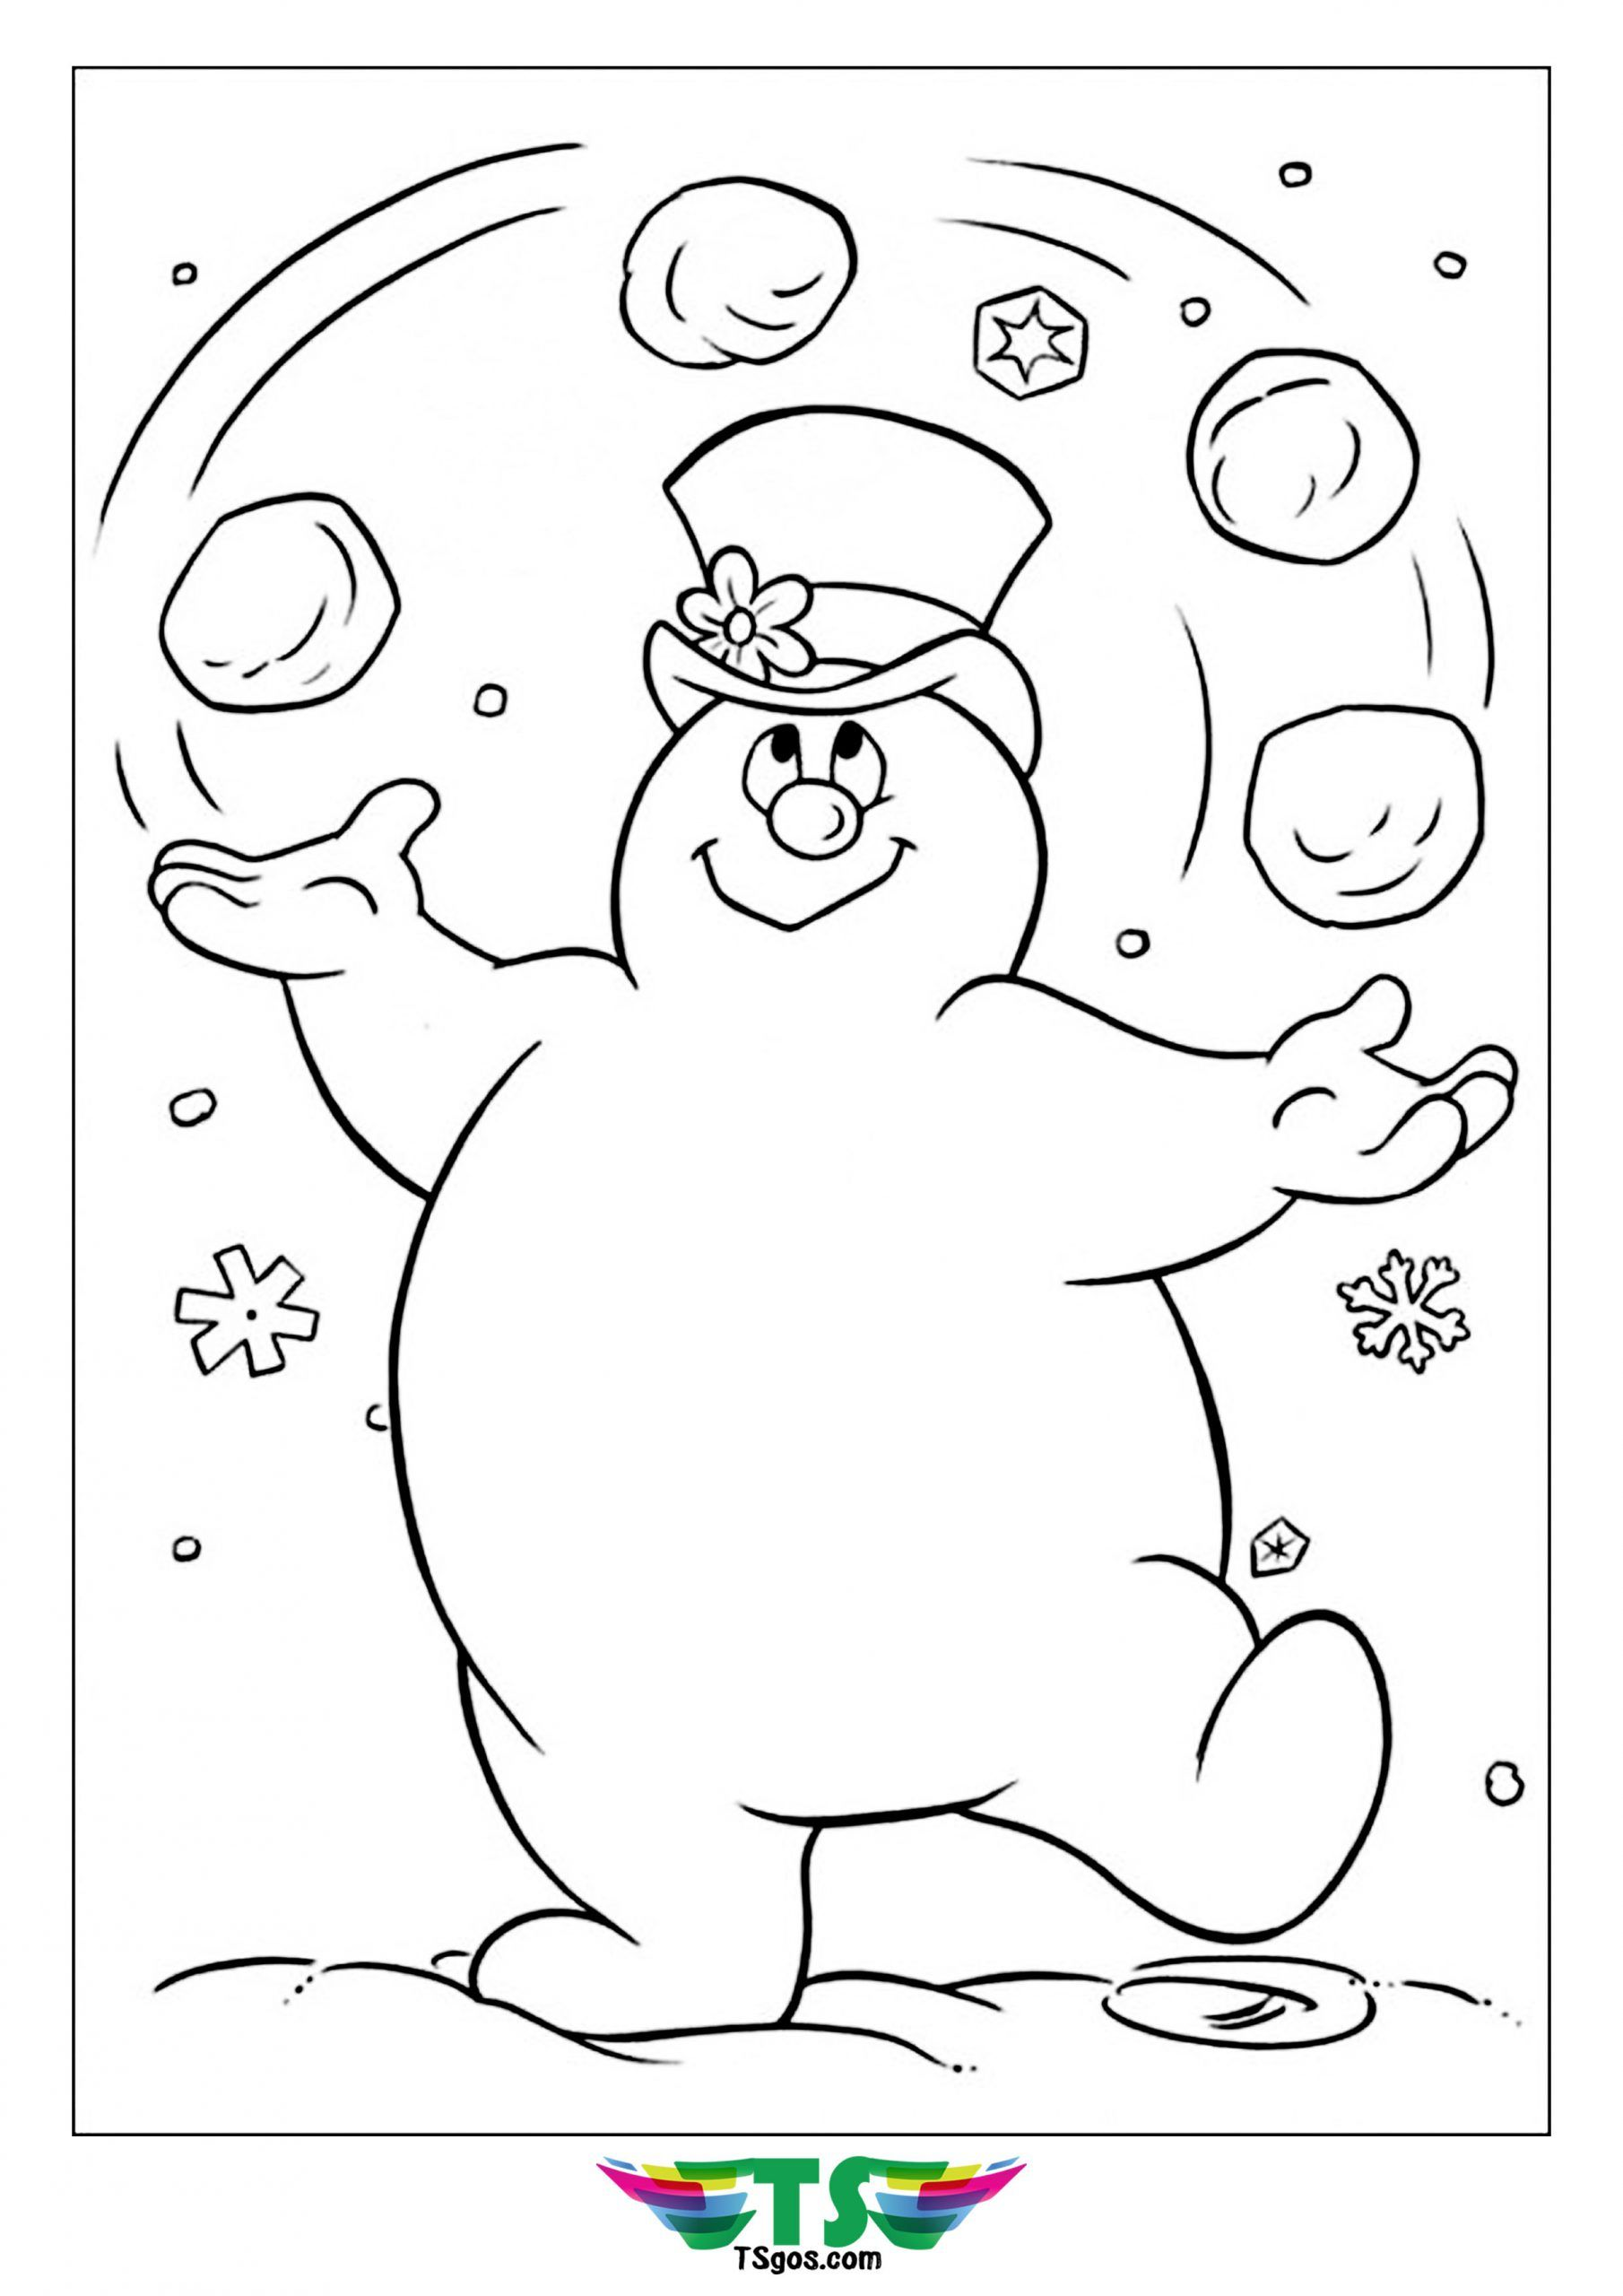 Frosty Snowman Playing Snowball Coloring Snowman Coloring Pages